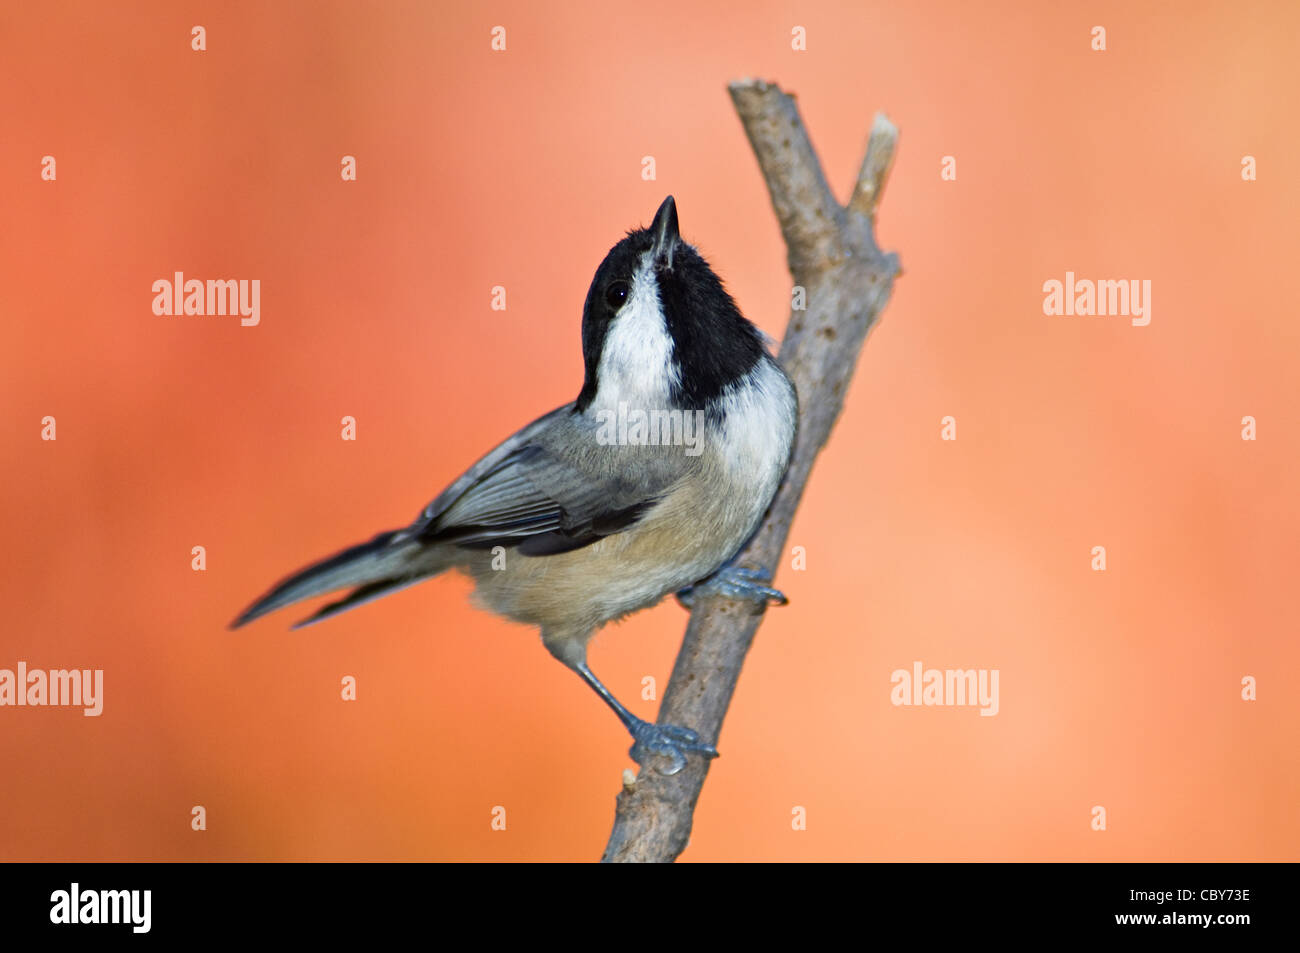 Carolina Chickadee and Autumn Color in Floyd County, Indiana - Stock Image